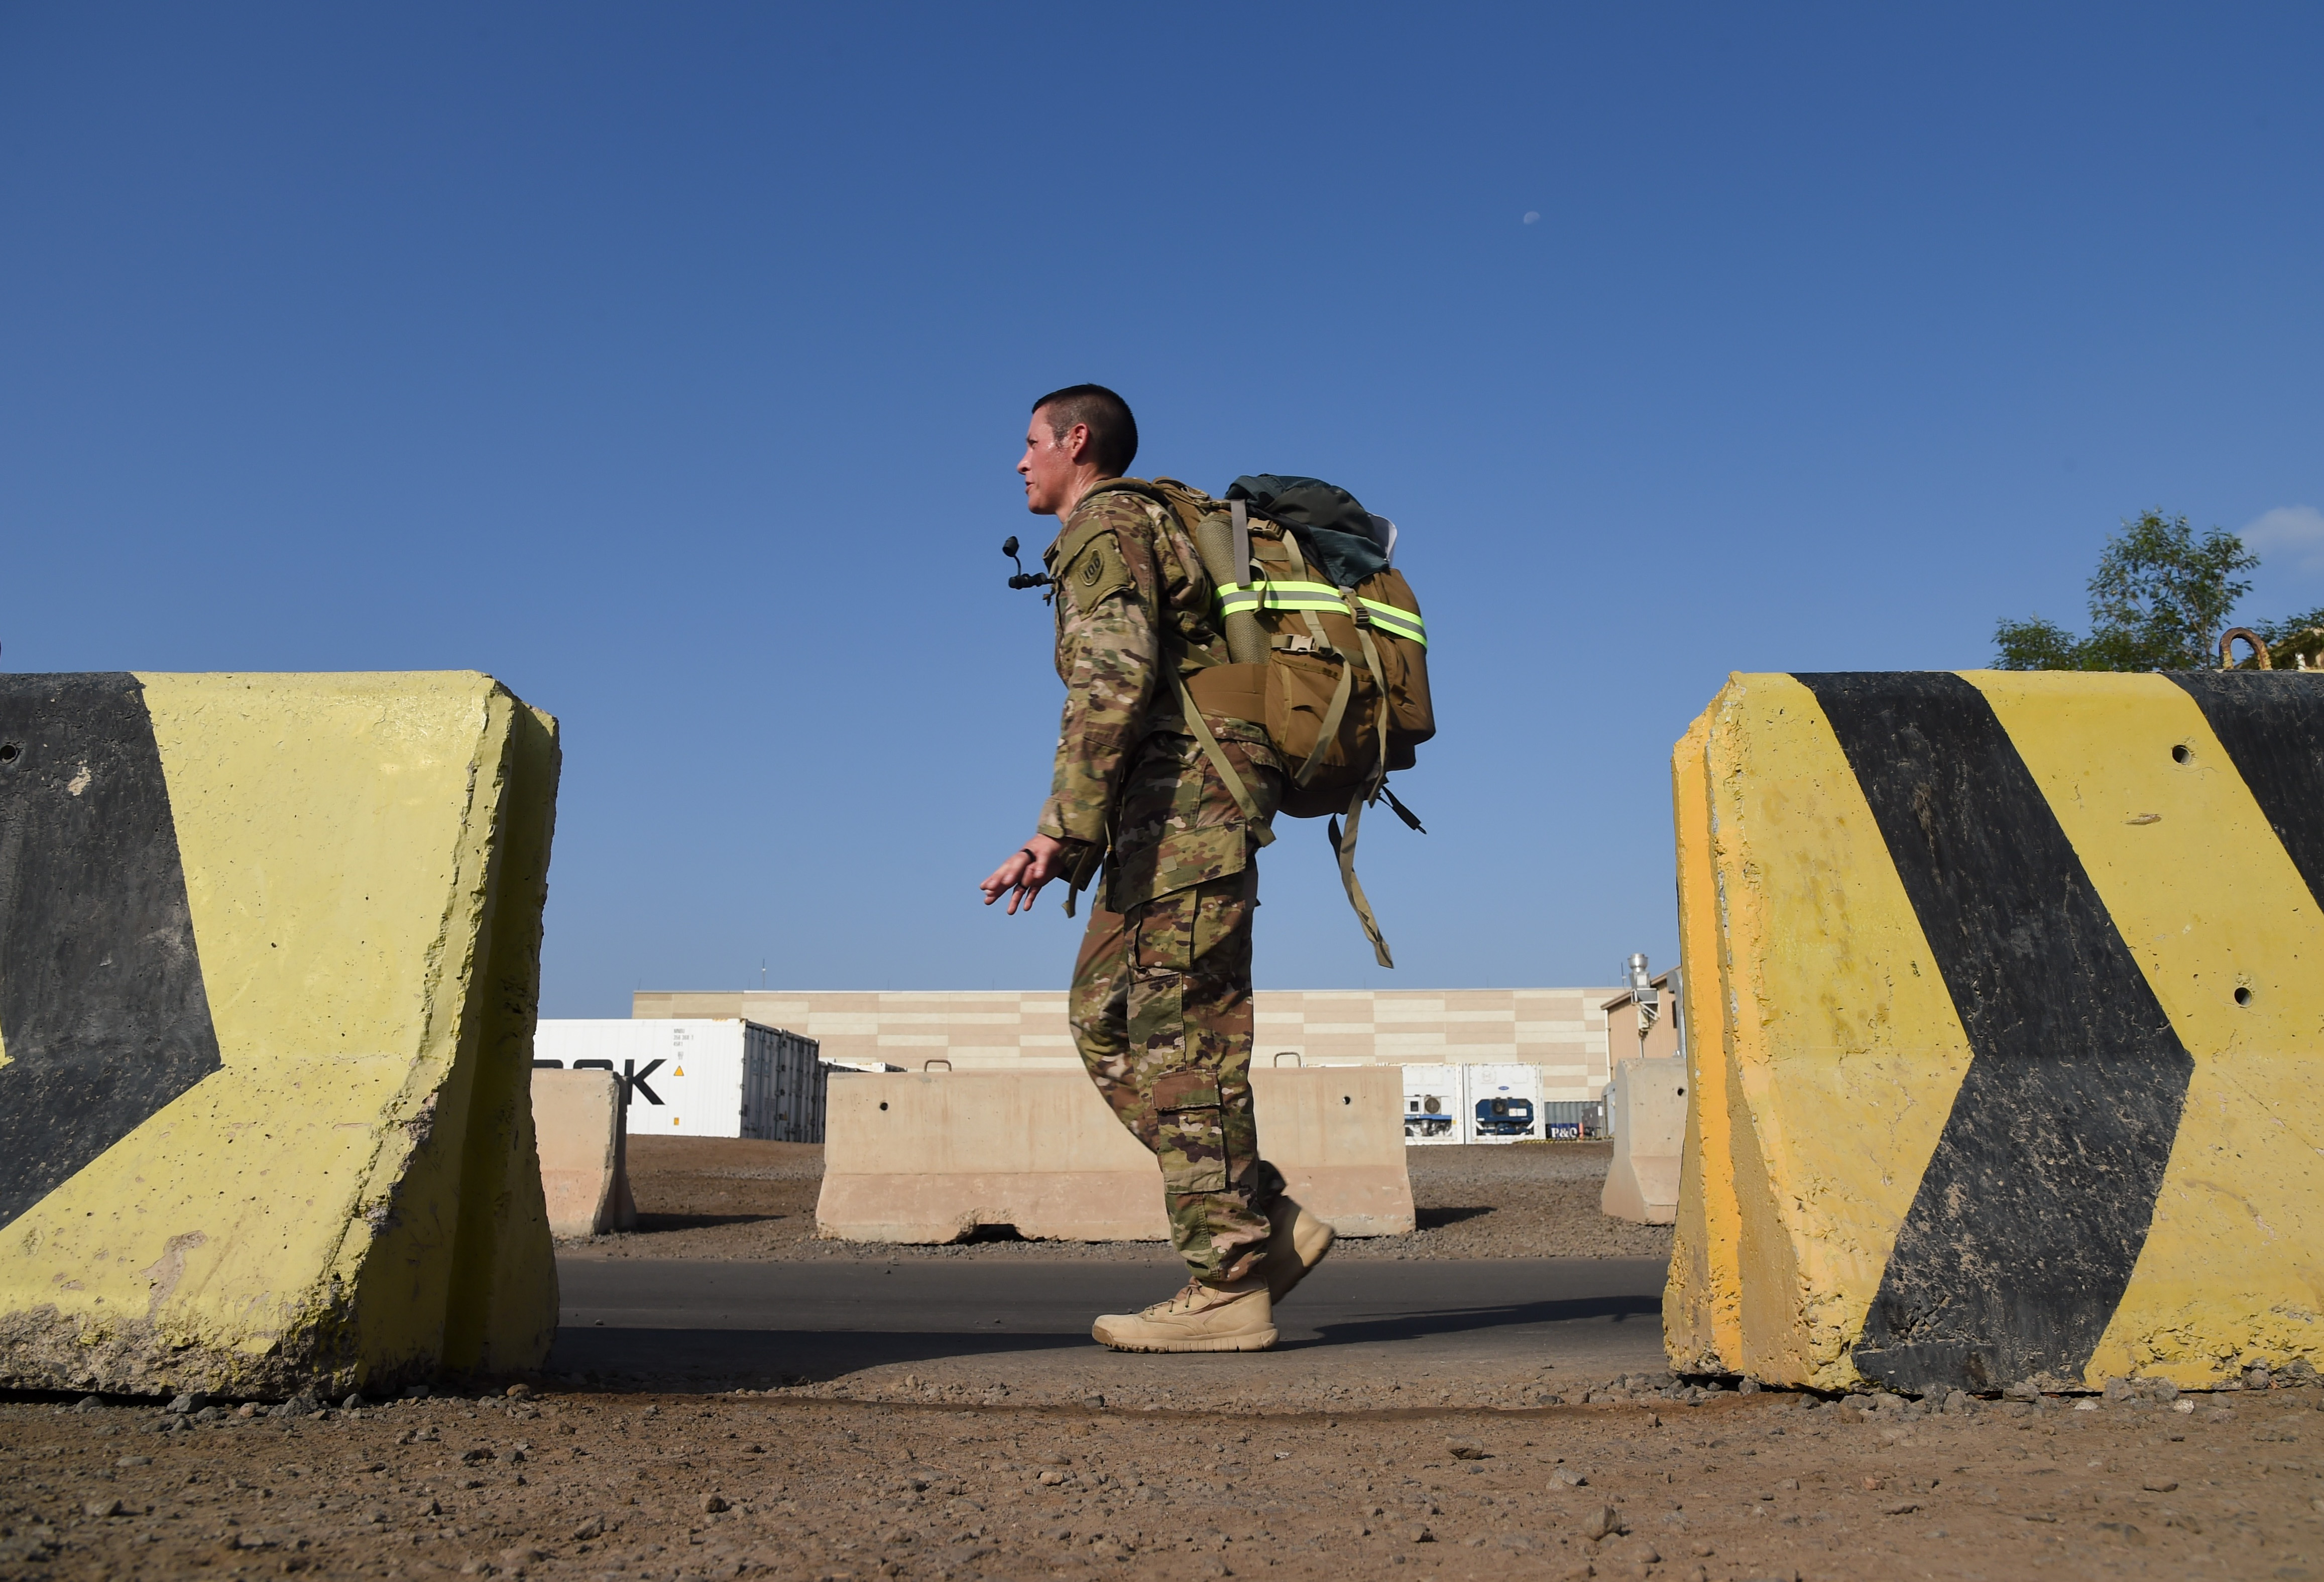 U.S. Army Staff Sgt. Hannah Mabel, Combined Joint Task Force-Horn of Africa, endures a five-mile Army ruck march during the Joint Warrior Competition, Nov. 19, 2016, Camp Lemonnier, Djibouti. The ruck march began after participants had already completed a. Competitors had to carry a minimum of 35 pounds during the march. (U.S. Air National Guard photo by Staff Sgt. Penny Snoozy)